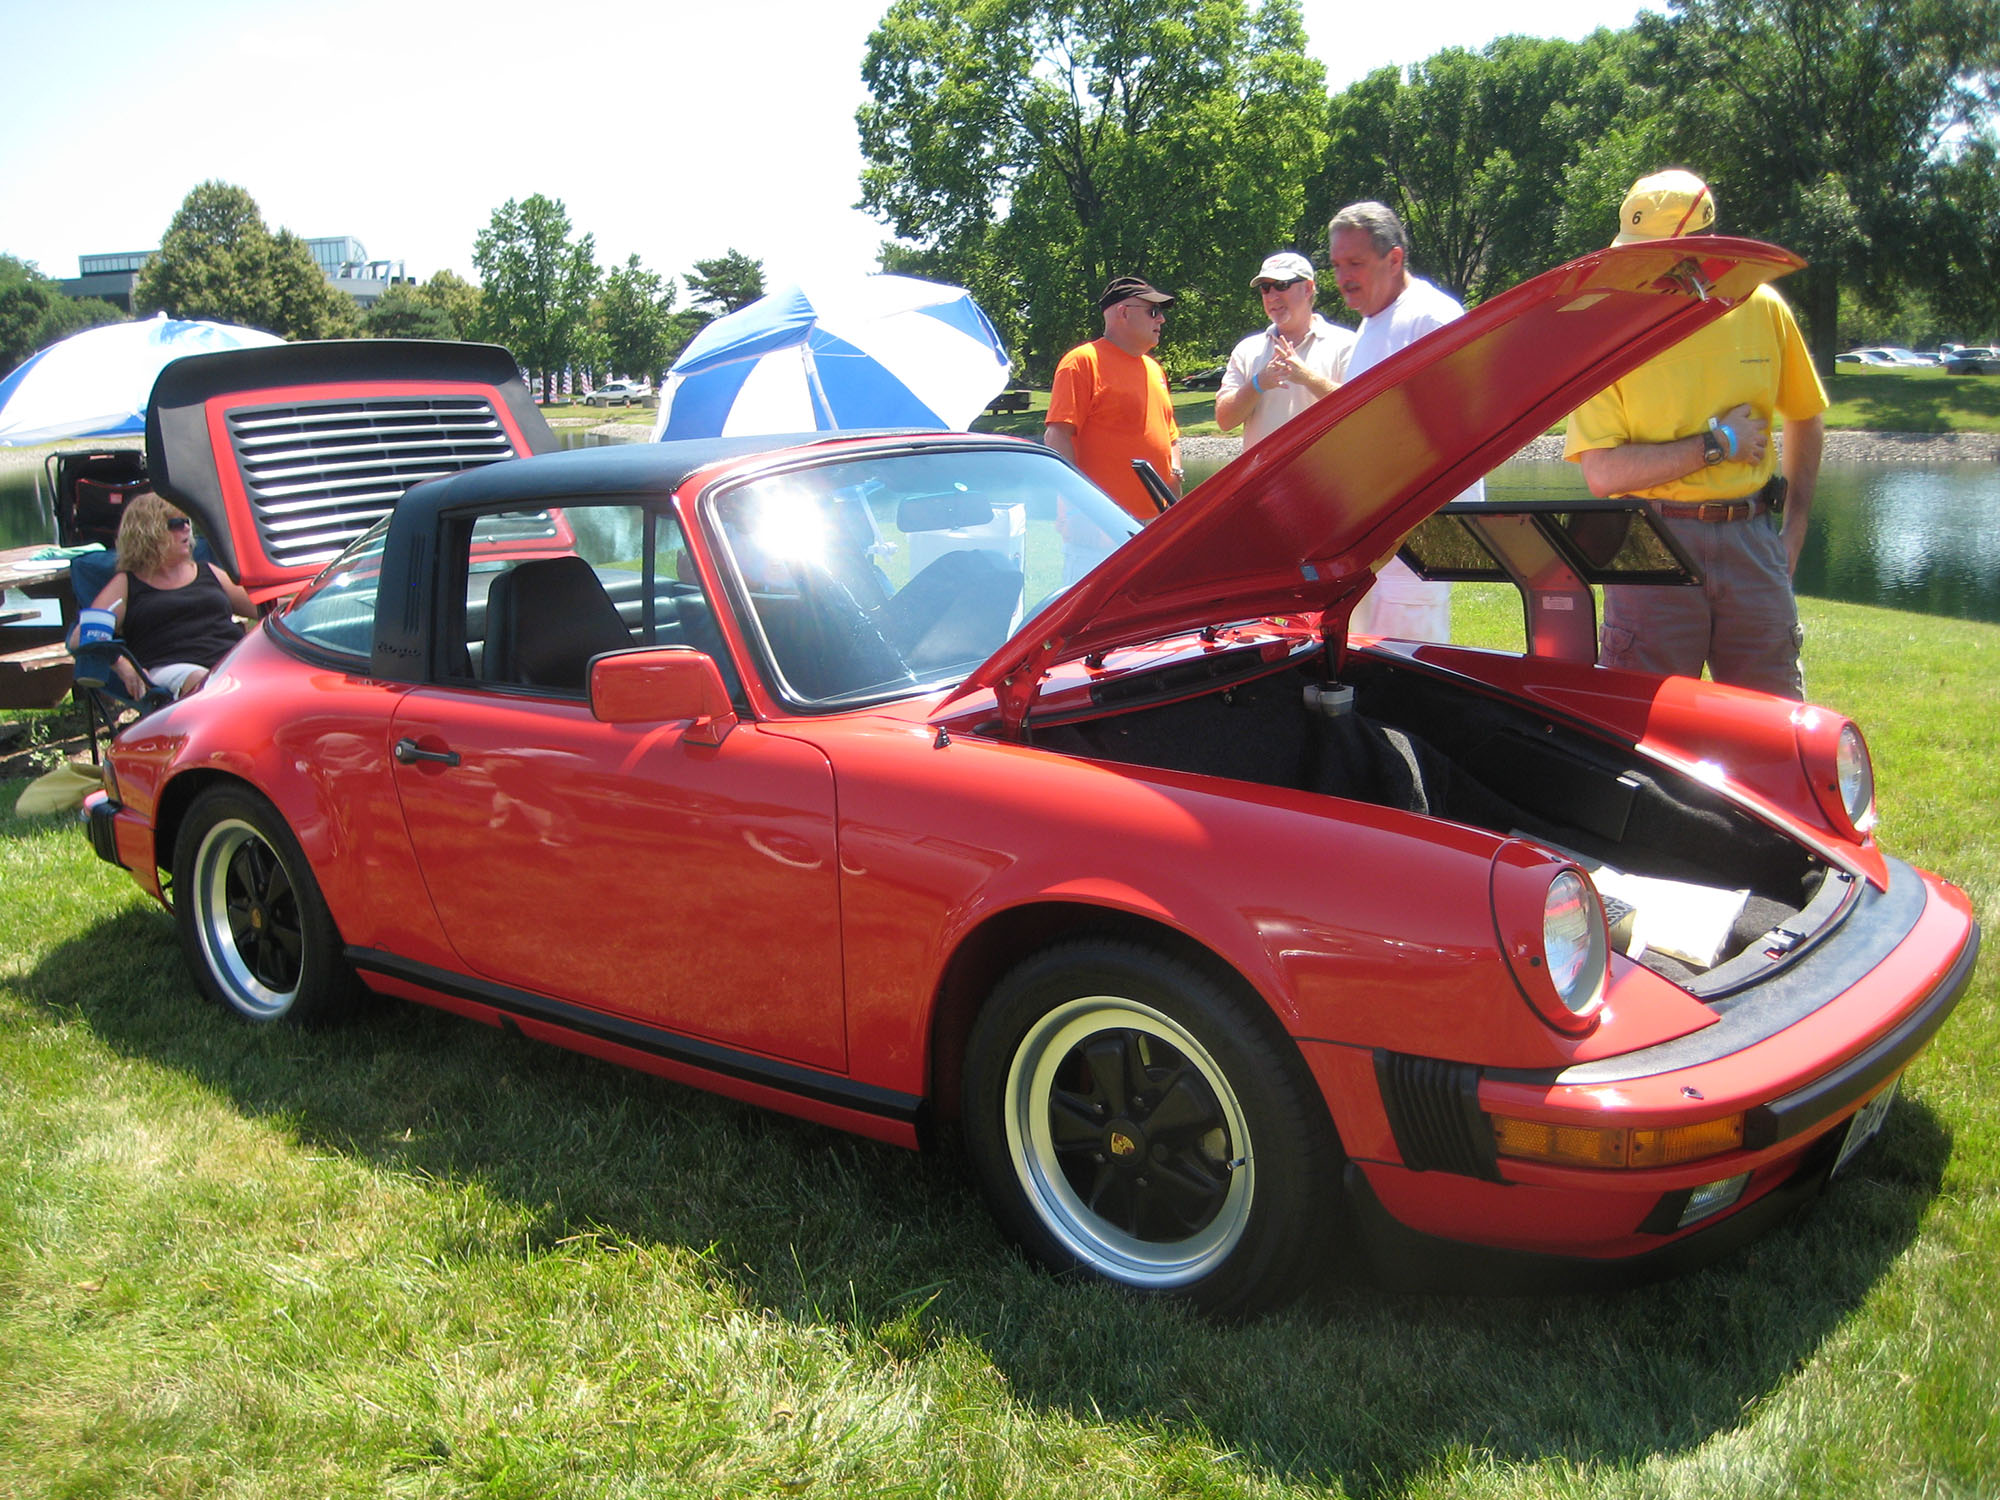 1984 Porsche 911 Targa in Guards Red